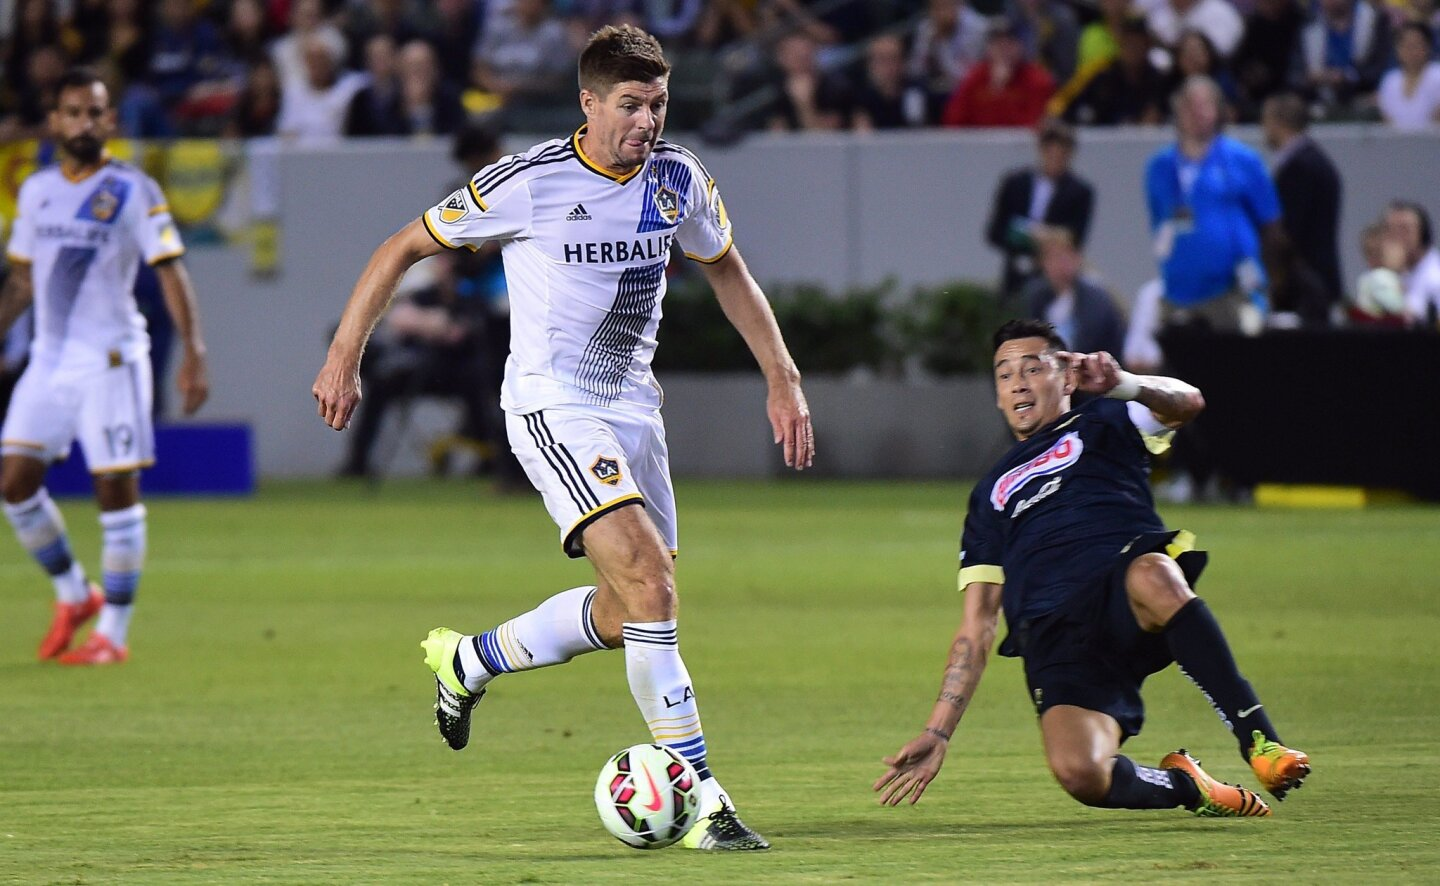 In his MLS debut, Liverpool FC legend Steven Gerrard (C) of the LA Galaxy looks to pass under pressure from Gil Buron of Club America on July 11, 2015 during their 2015 International Champions Cup match in Carson, California. AFP PHOTO / FREDERIC J. BROWNFREDERIC J. BROWN/AFP/Getty Images ** OUTS - ELSENT, FPG - OUTS * NM, PH, VA if sourced by CT, LA or MoD **